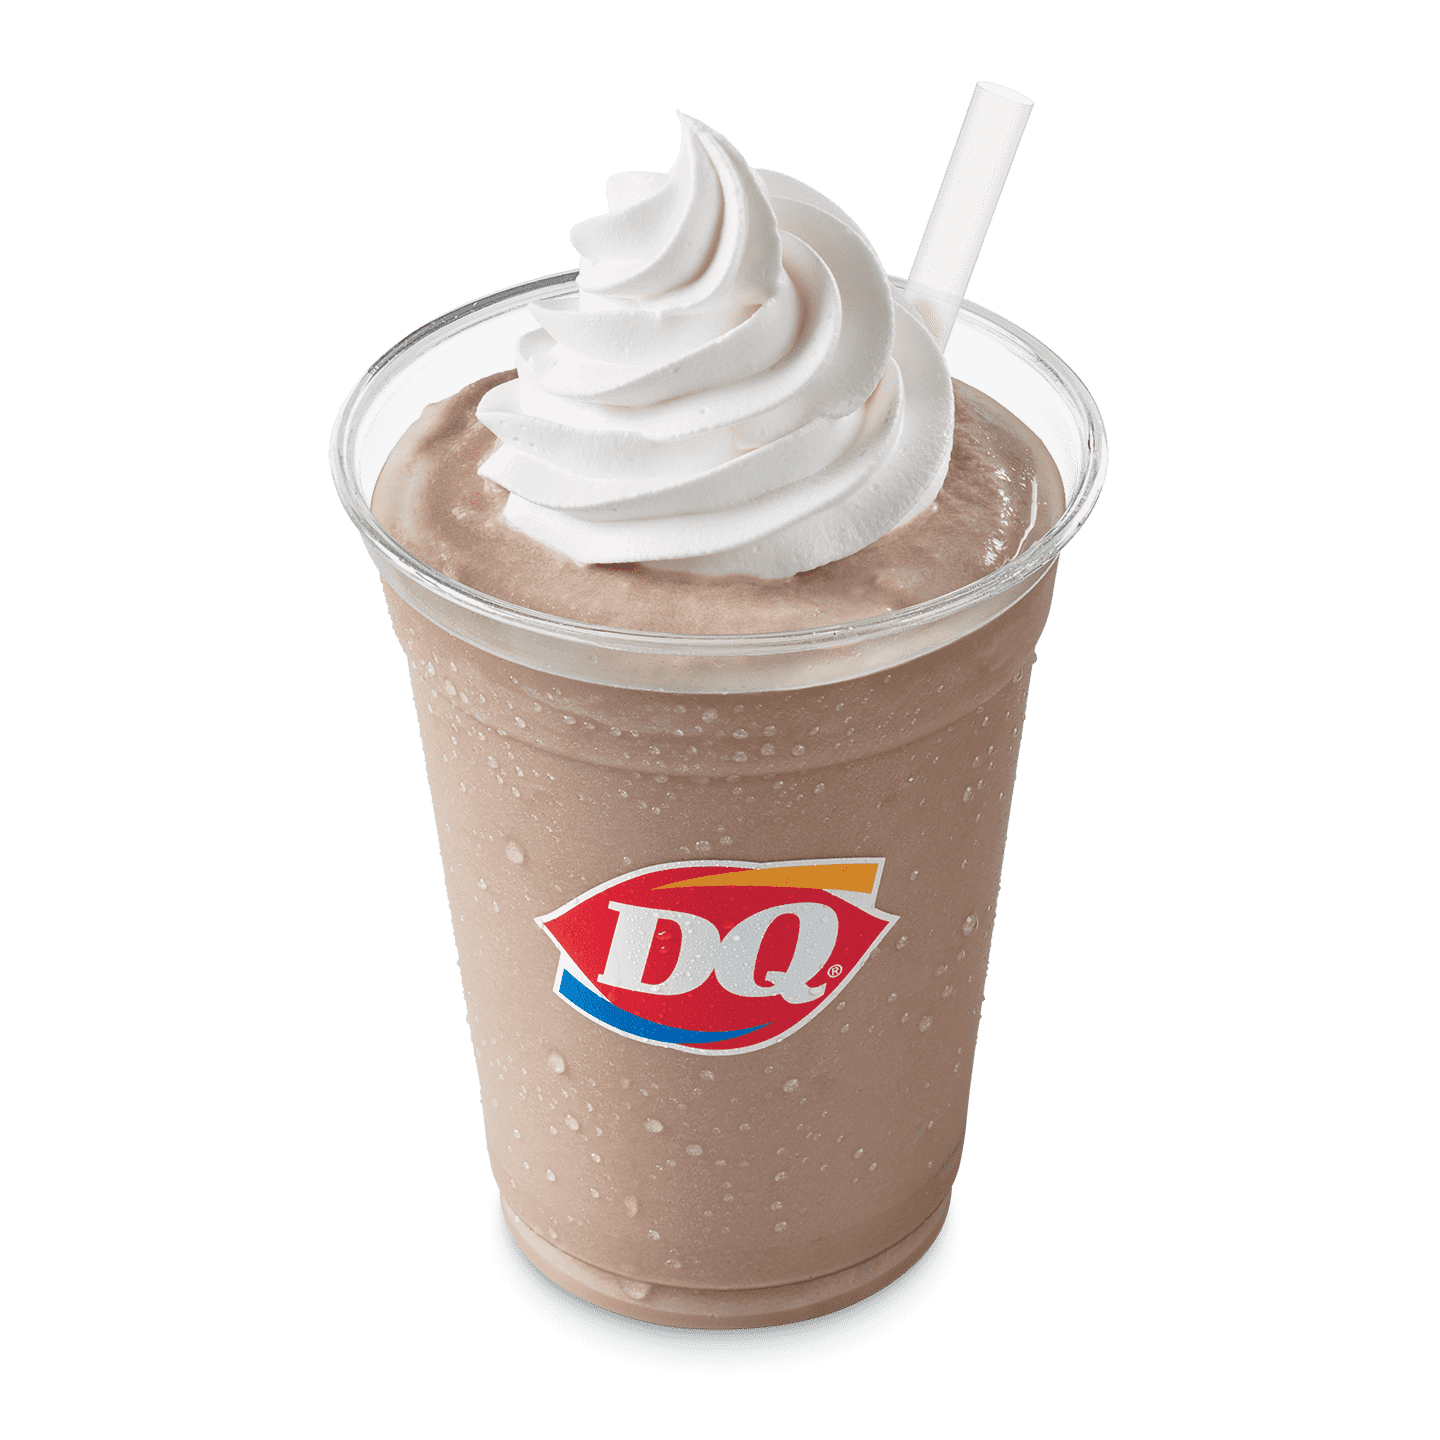 Chocolate shake or malt with whipped topping